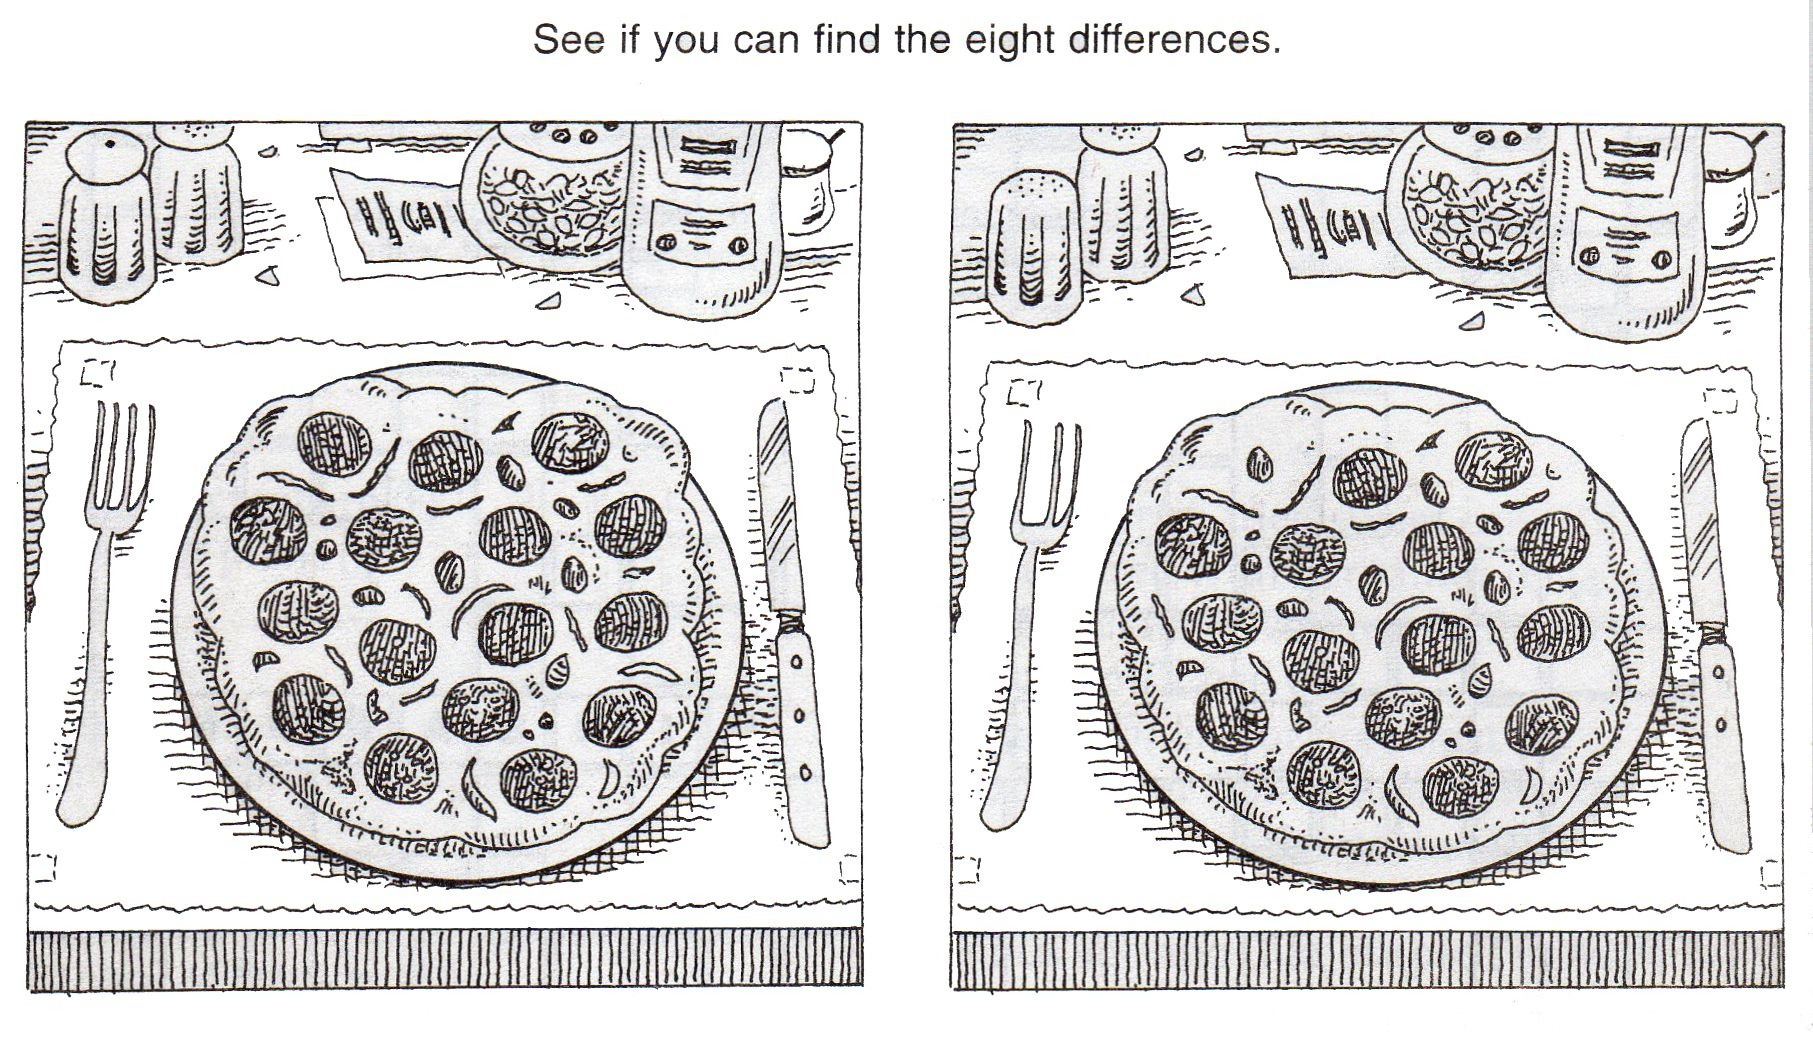 Free+Printable+Spot+The+Difference+Puzzles | Hg | Spot The - Free Printable Spot The Difference Games For Adults